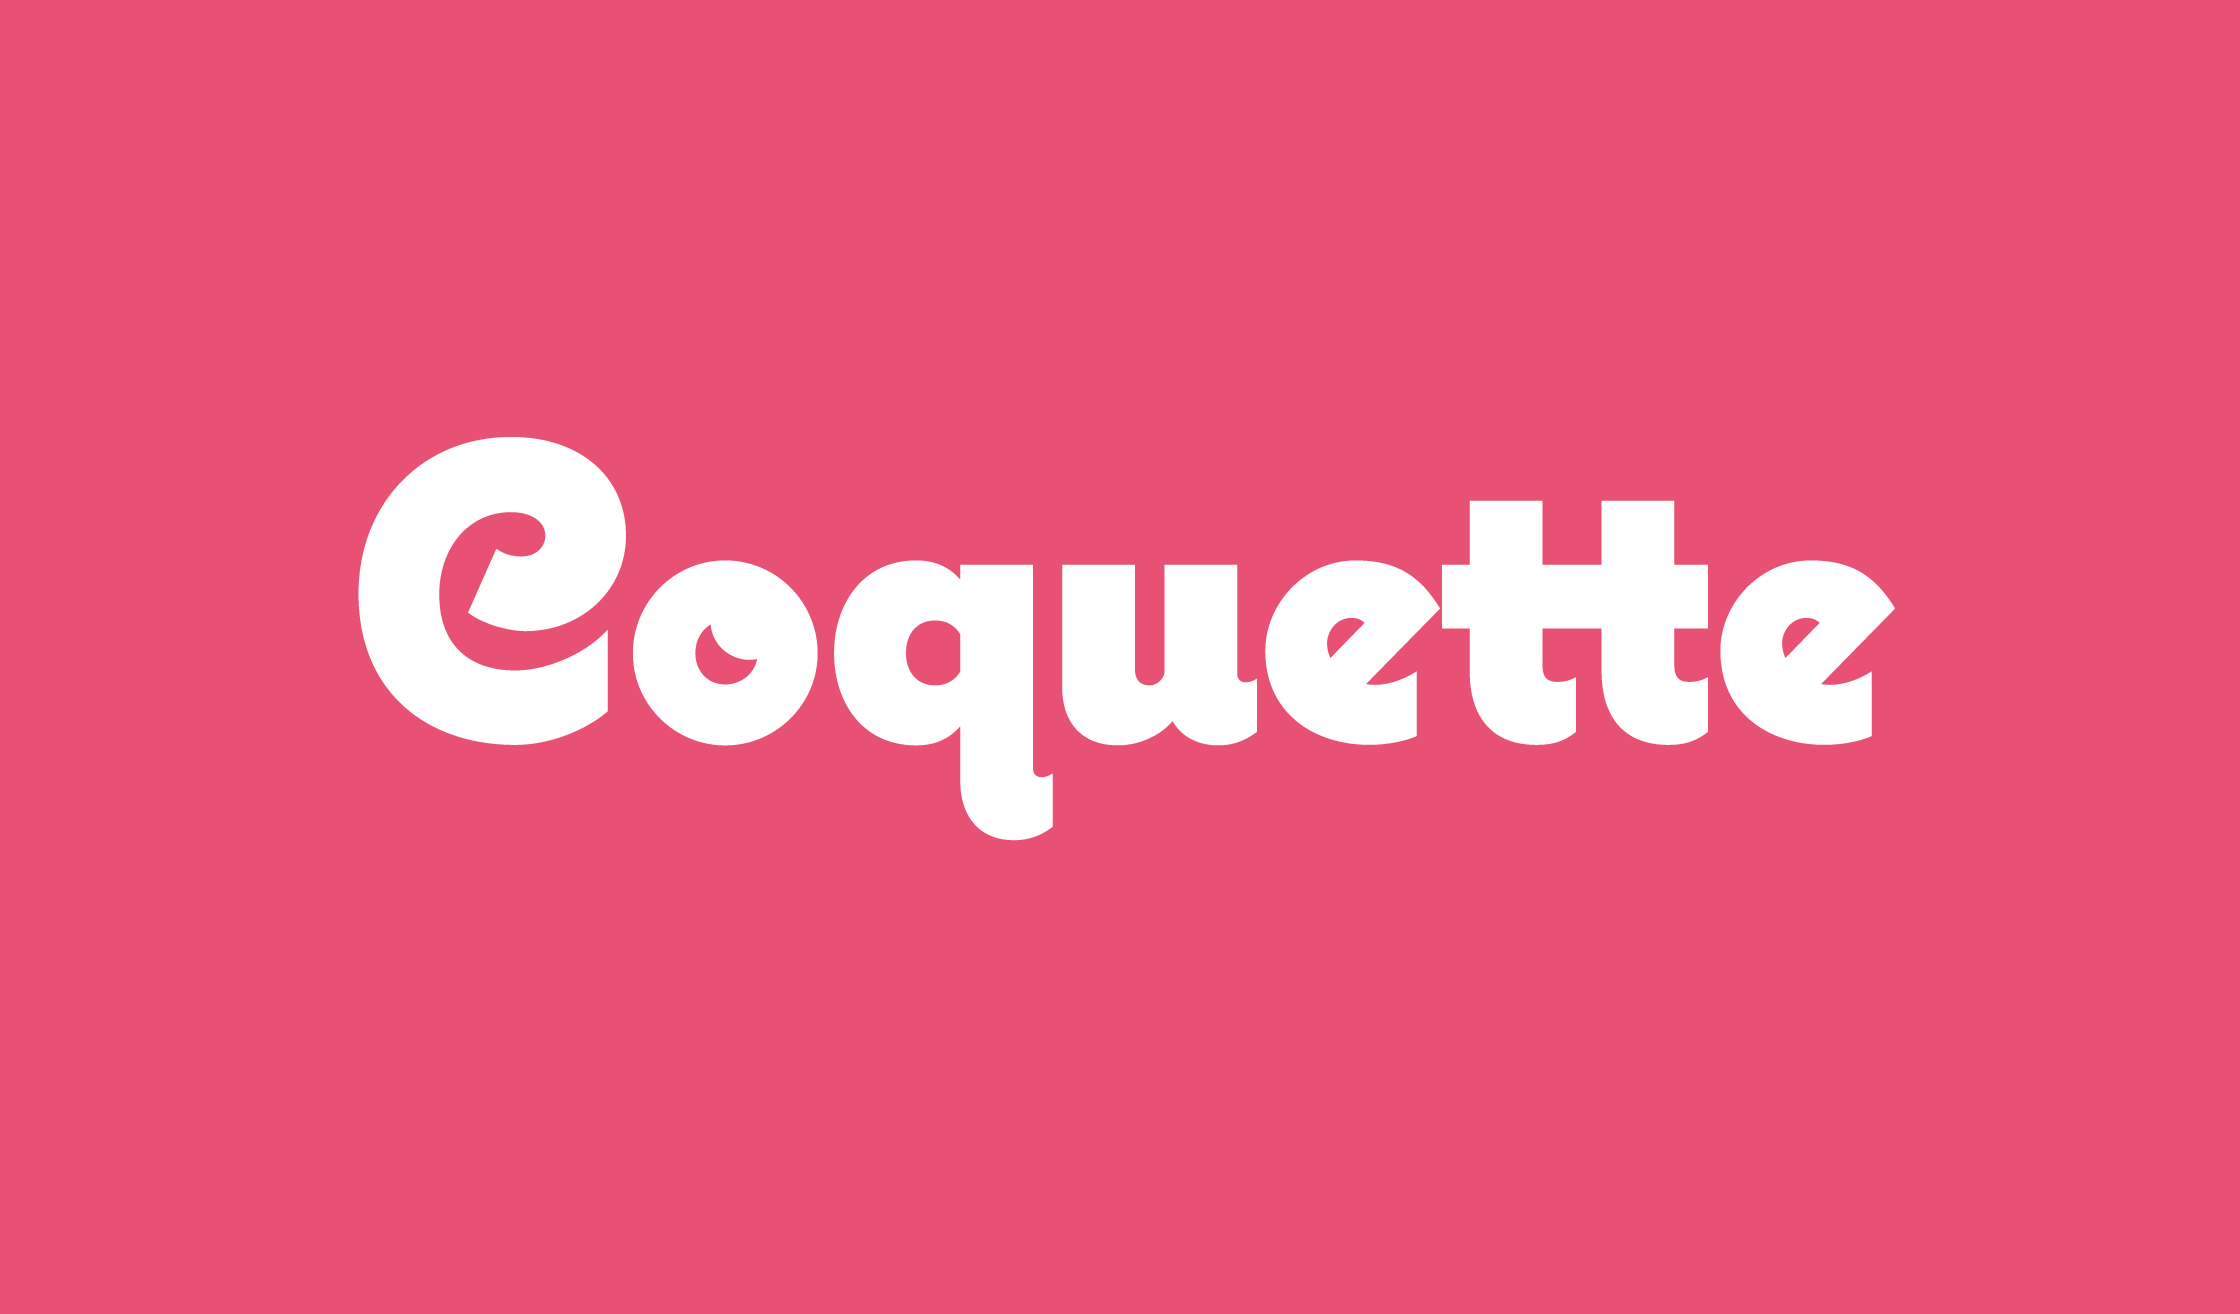 Coquette Banner Name 2240